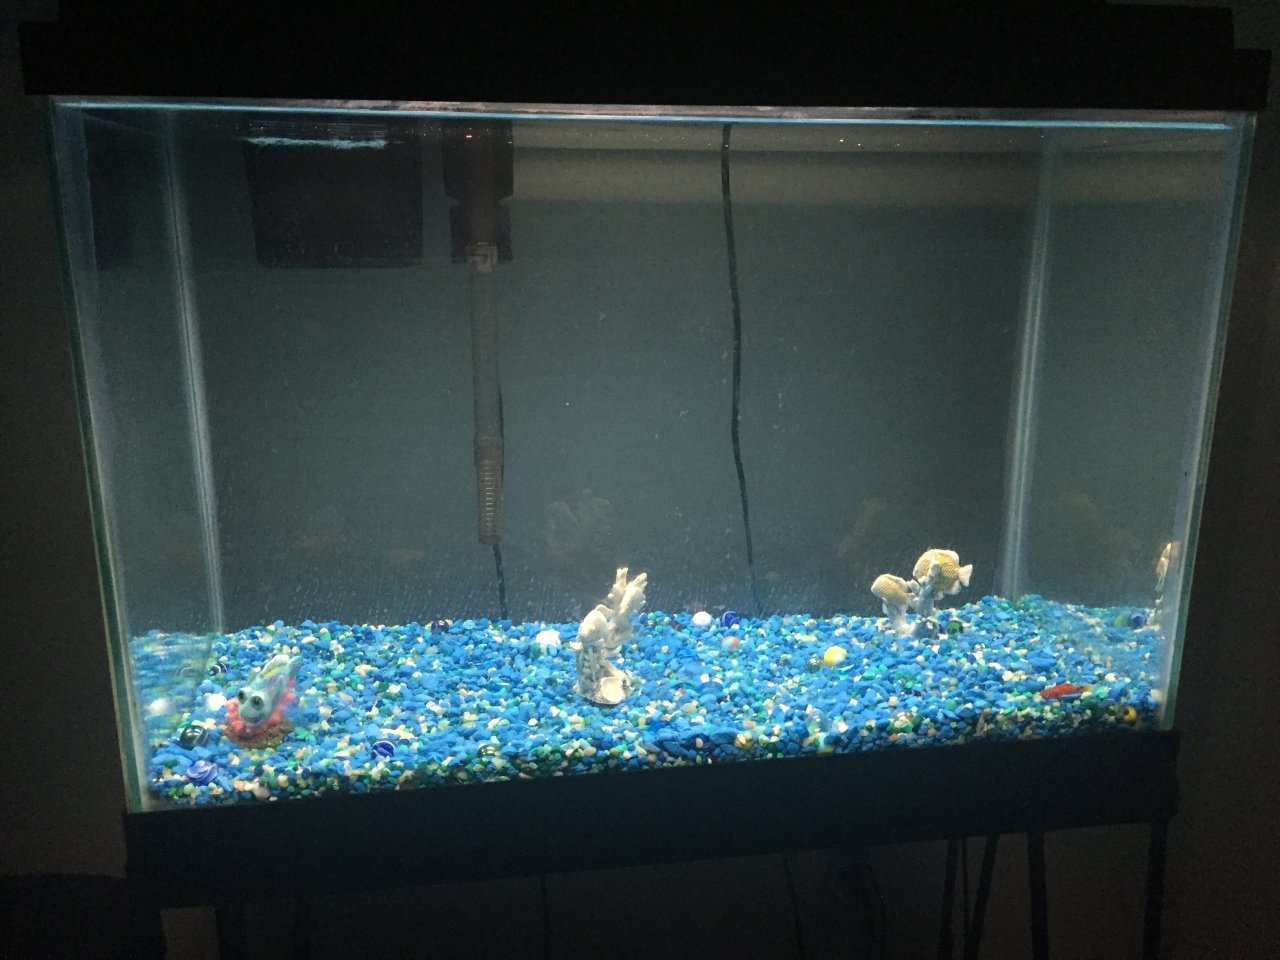 Freshwater aquarium fish keep dying - We Have An Algee Eater In The Tank But He Died Yesterday Is It The Water What Are Some Tips To Keeping Fish Alive And Healthy